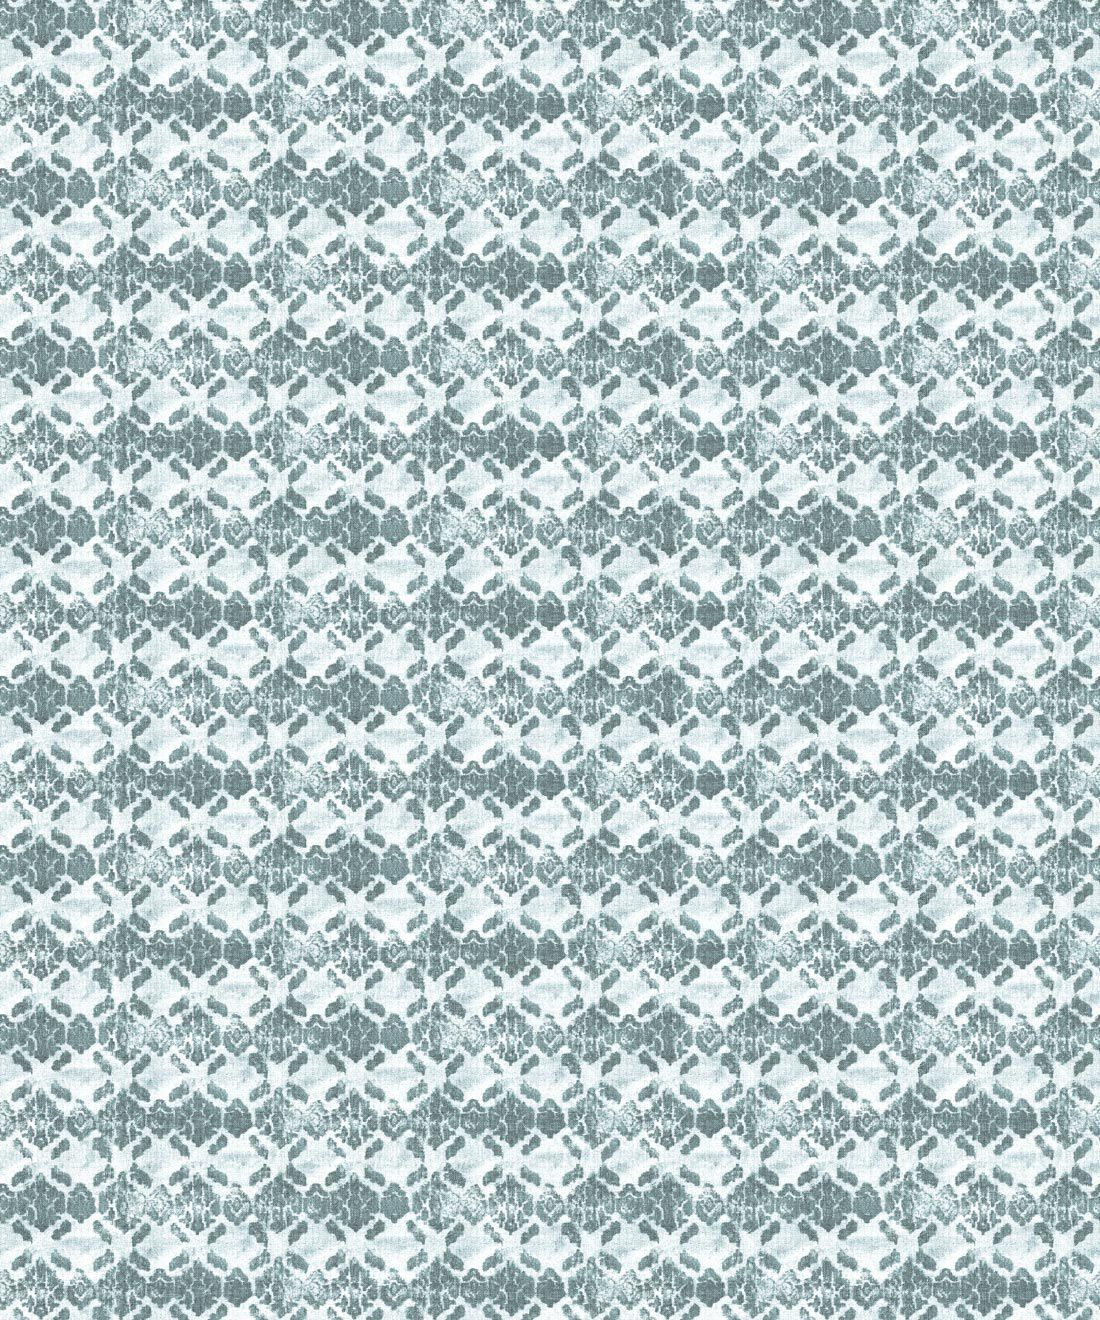 Green Ikat Wallpaper • Shibori